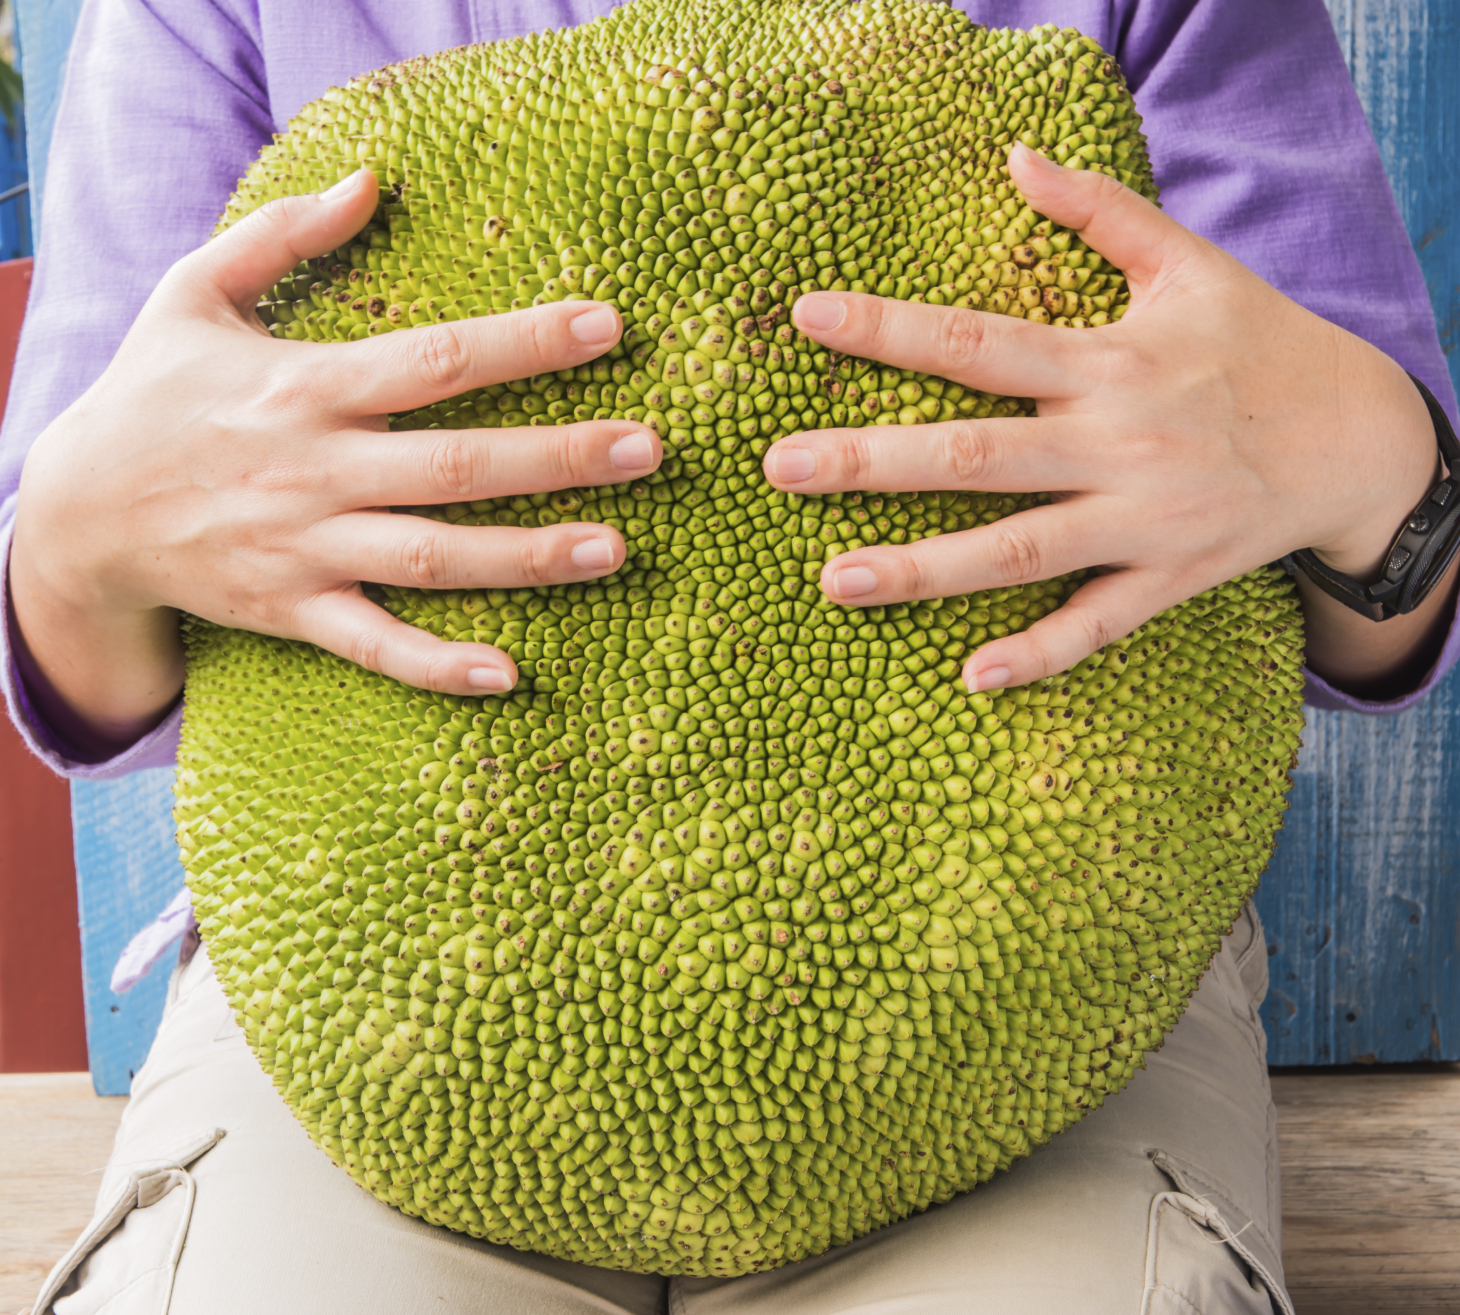 Image result for JAckFruit and person